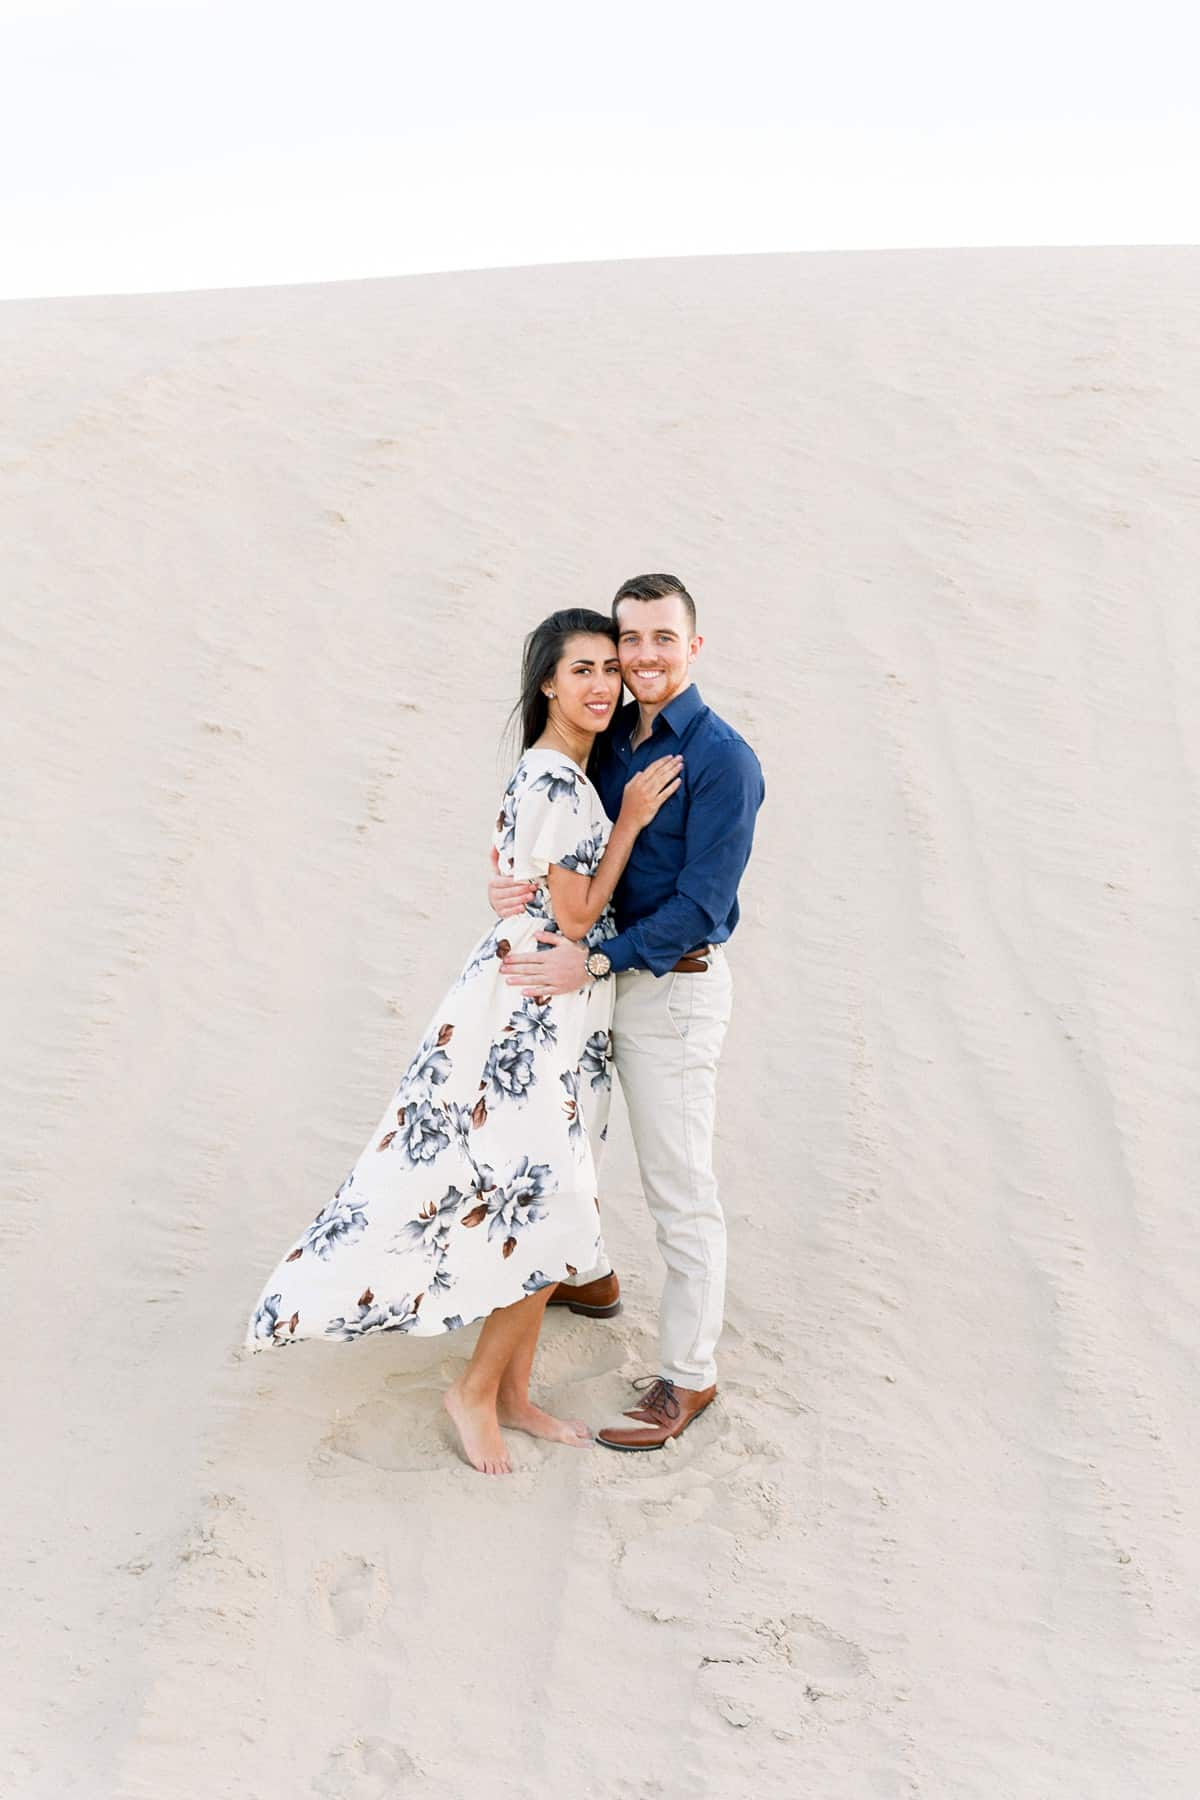 What to wear for engagement pictures, flowy floral dress, navy blue and white outfits